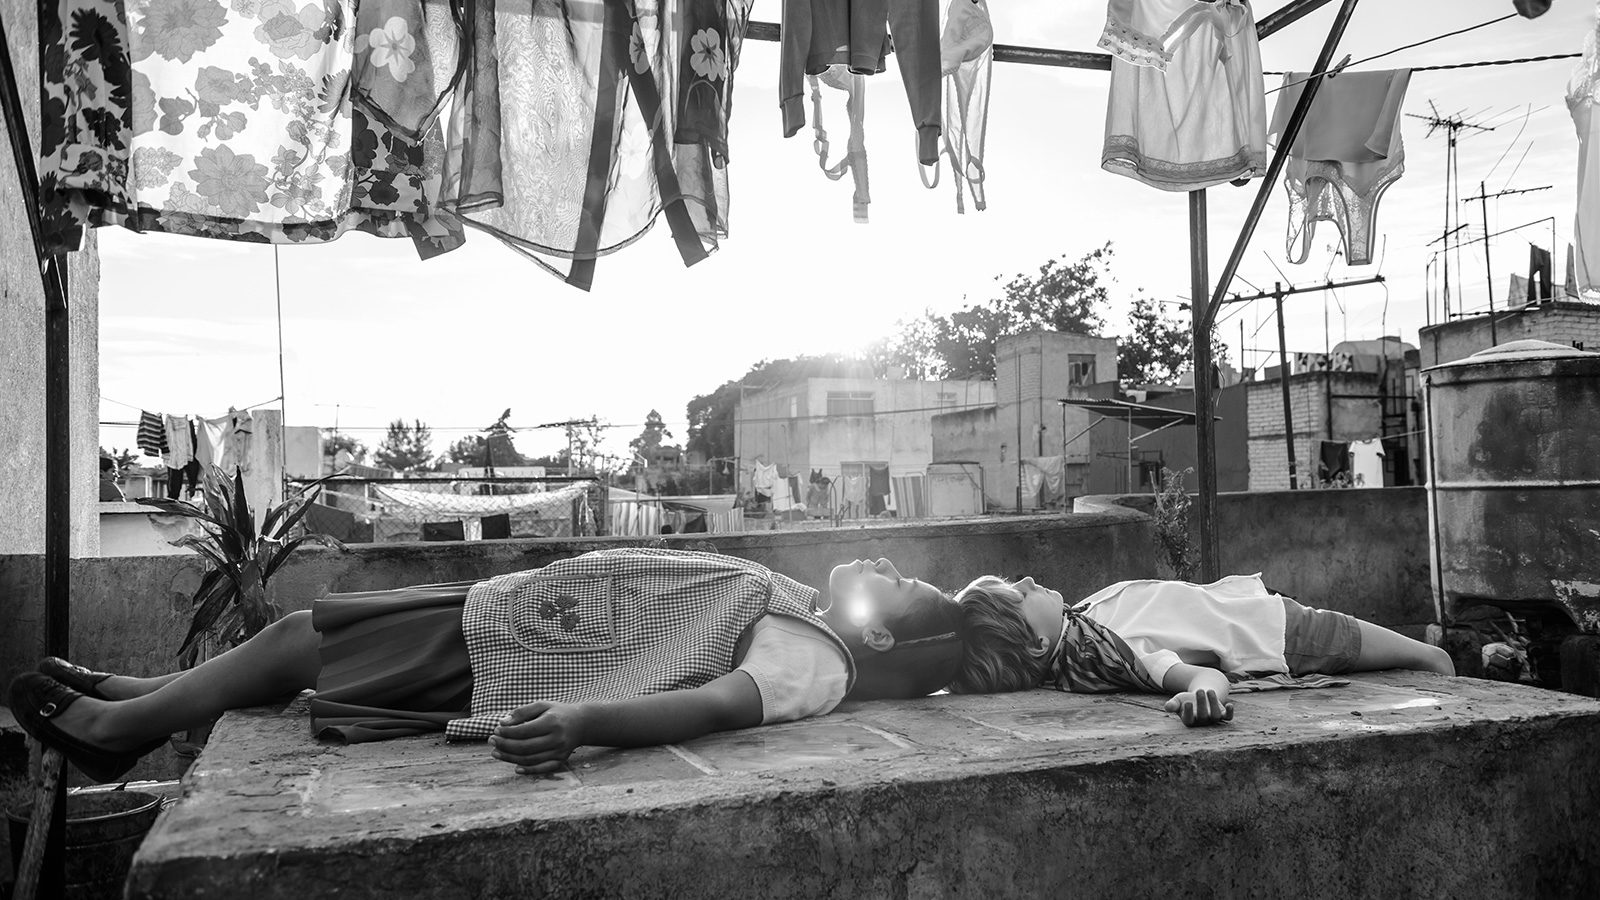 Actresses Yalitza Aparicio and Marina de Tavira on Embodying Alfonso Cuarón's Memories in 'Roma'